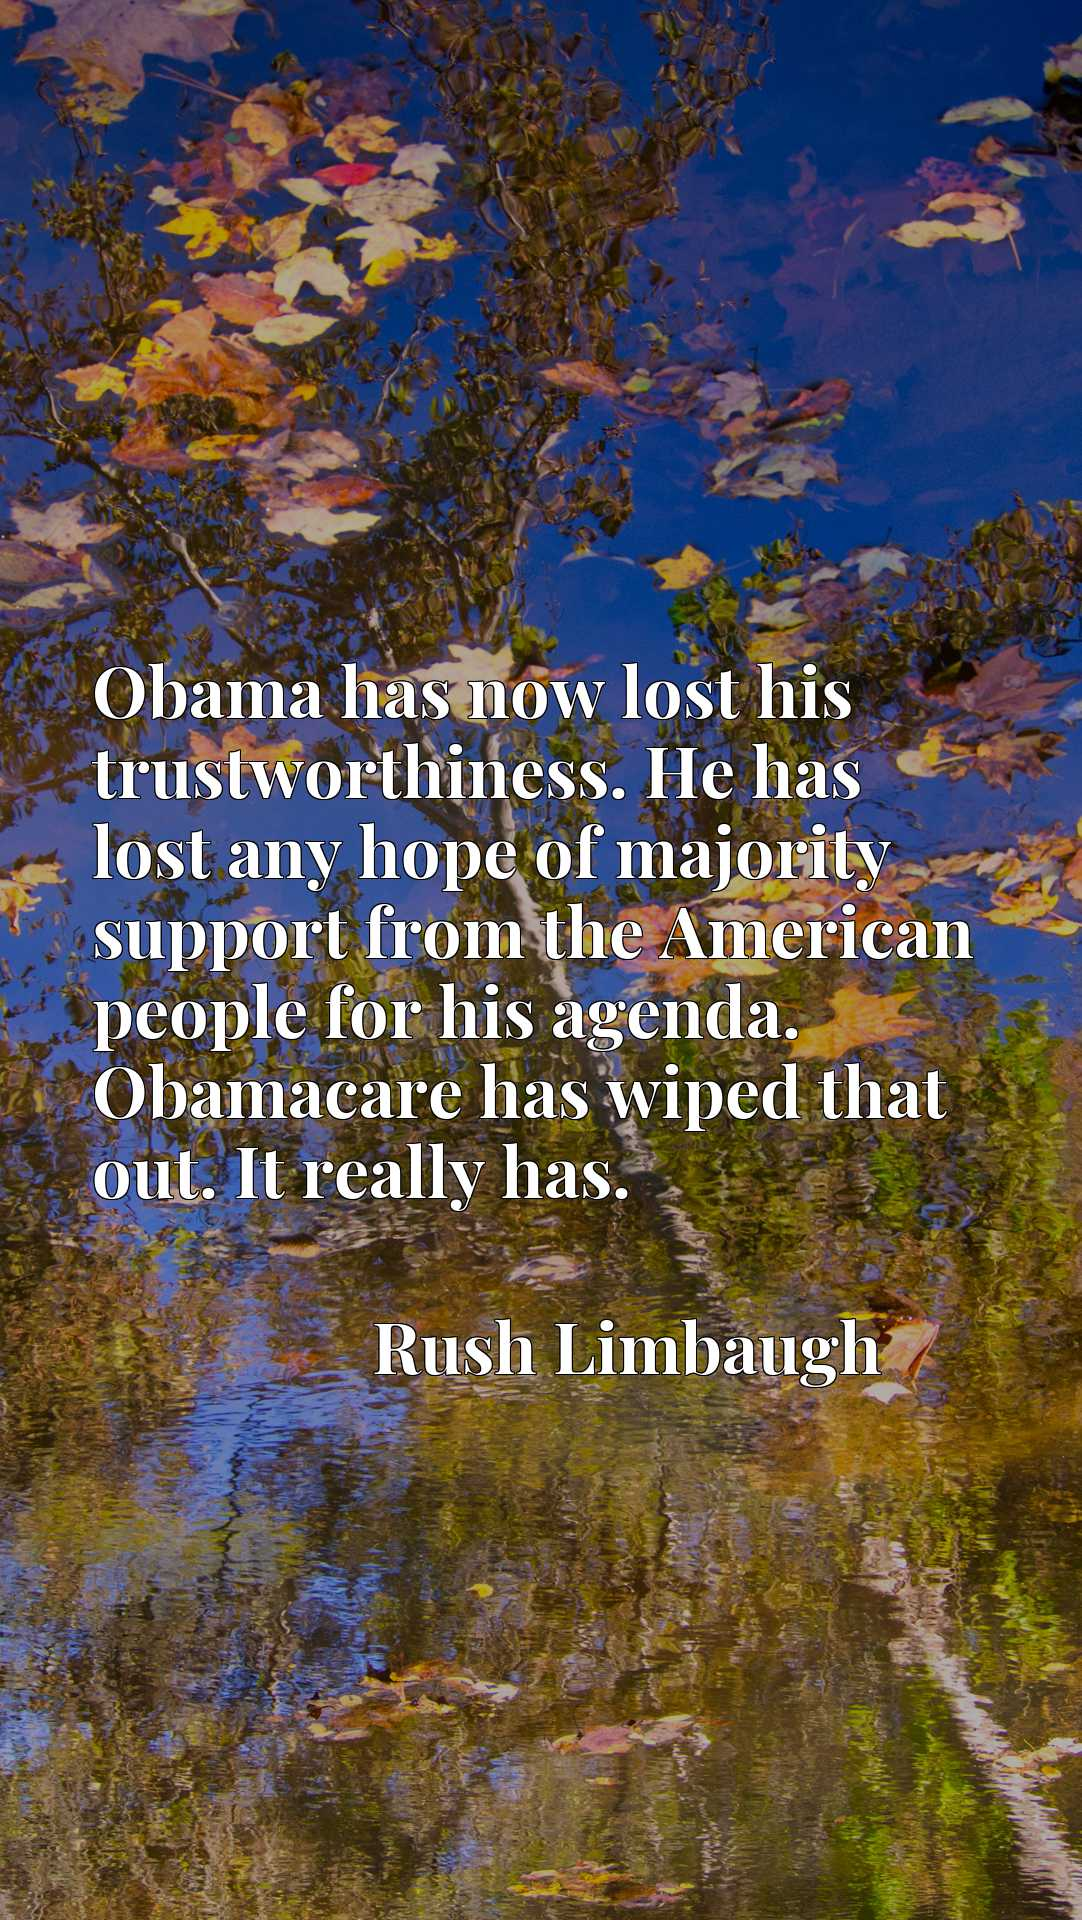 Obama has now lost his trustworthiness. He has lost any hope of majority support from the American people for his agenda. Obamacare has wiped that out. It really has.